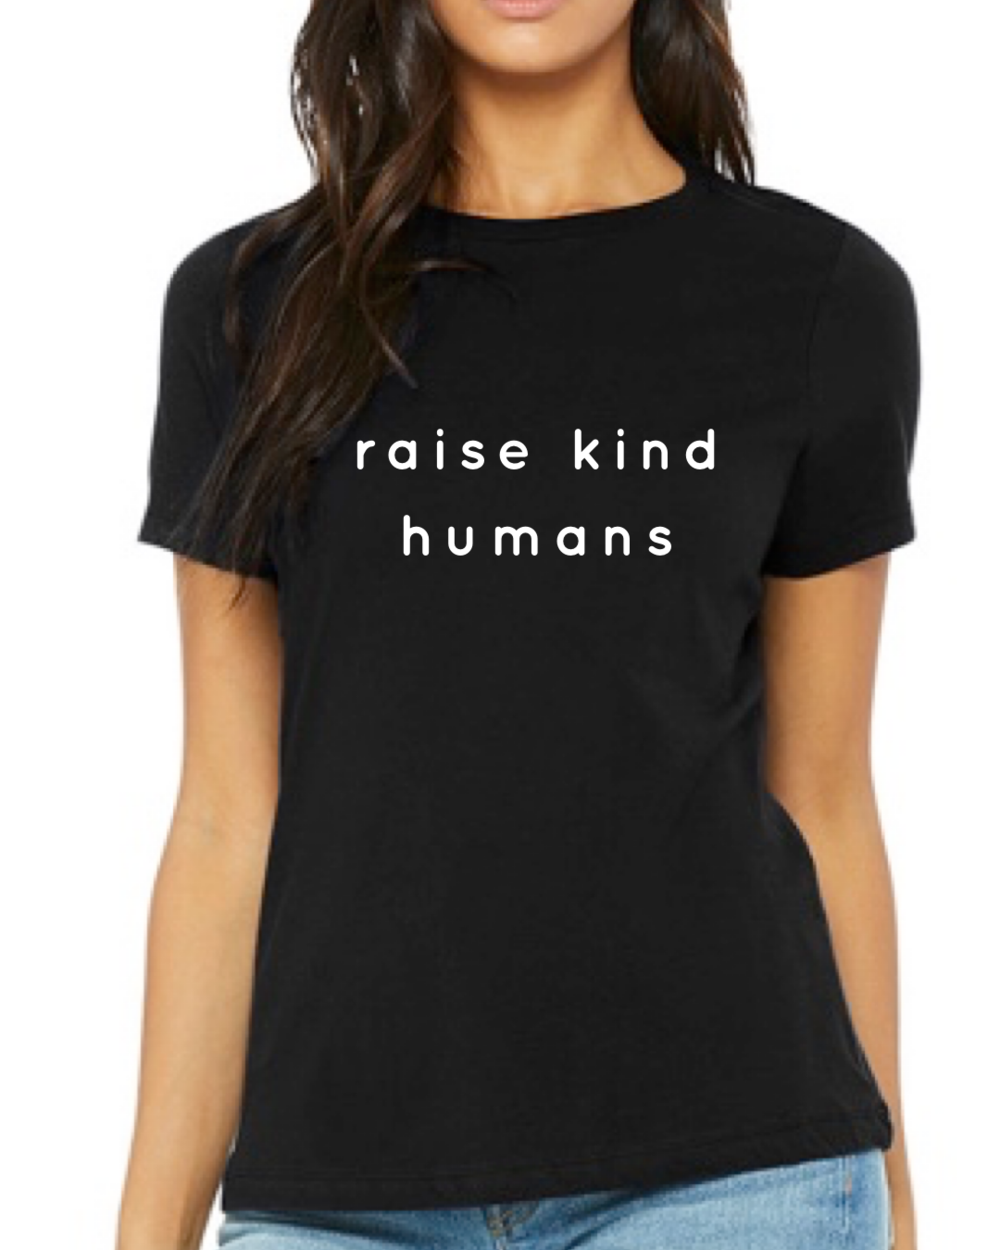 a model in a black tee that says raise kind humans